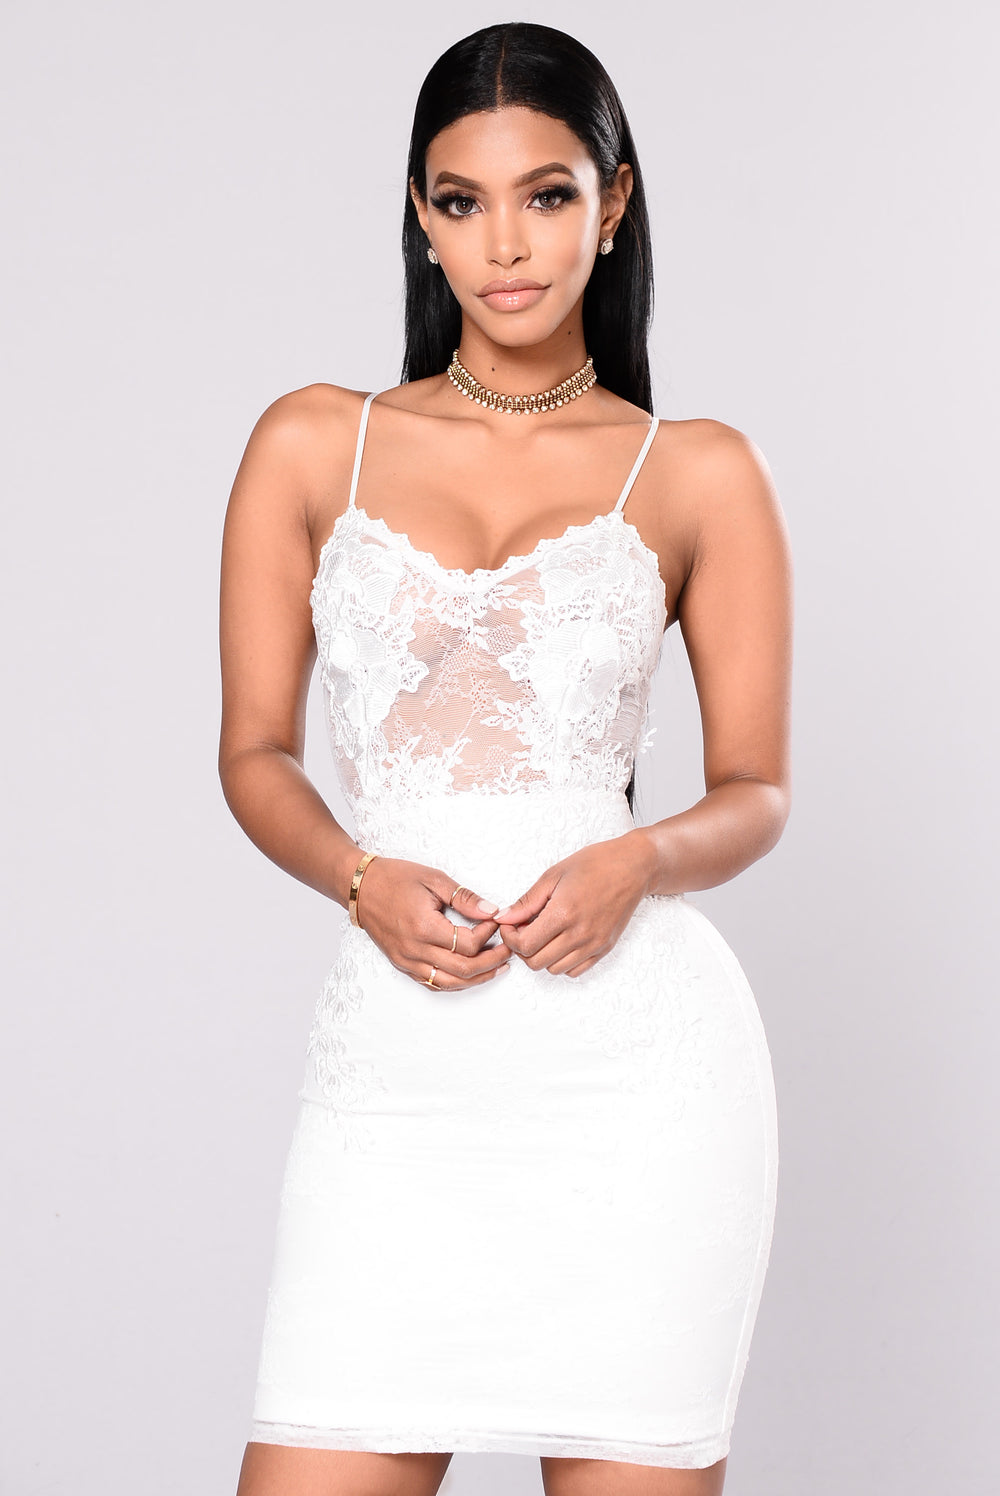 Bachelorette Party Dress - White